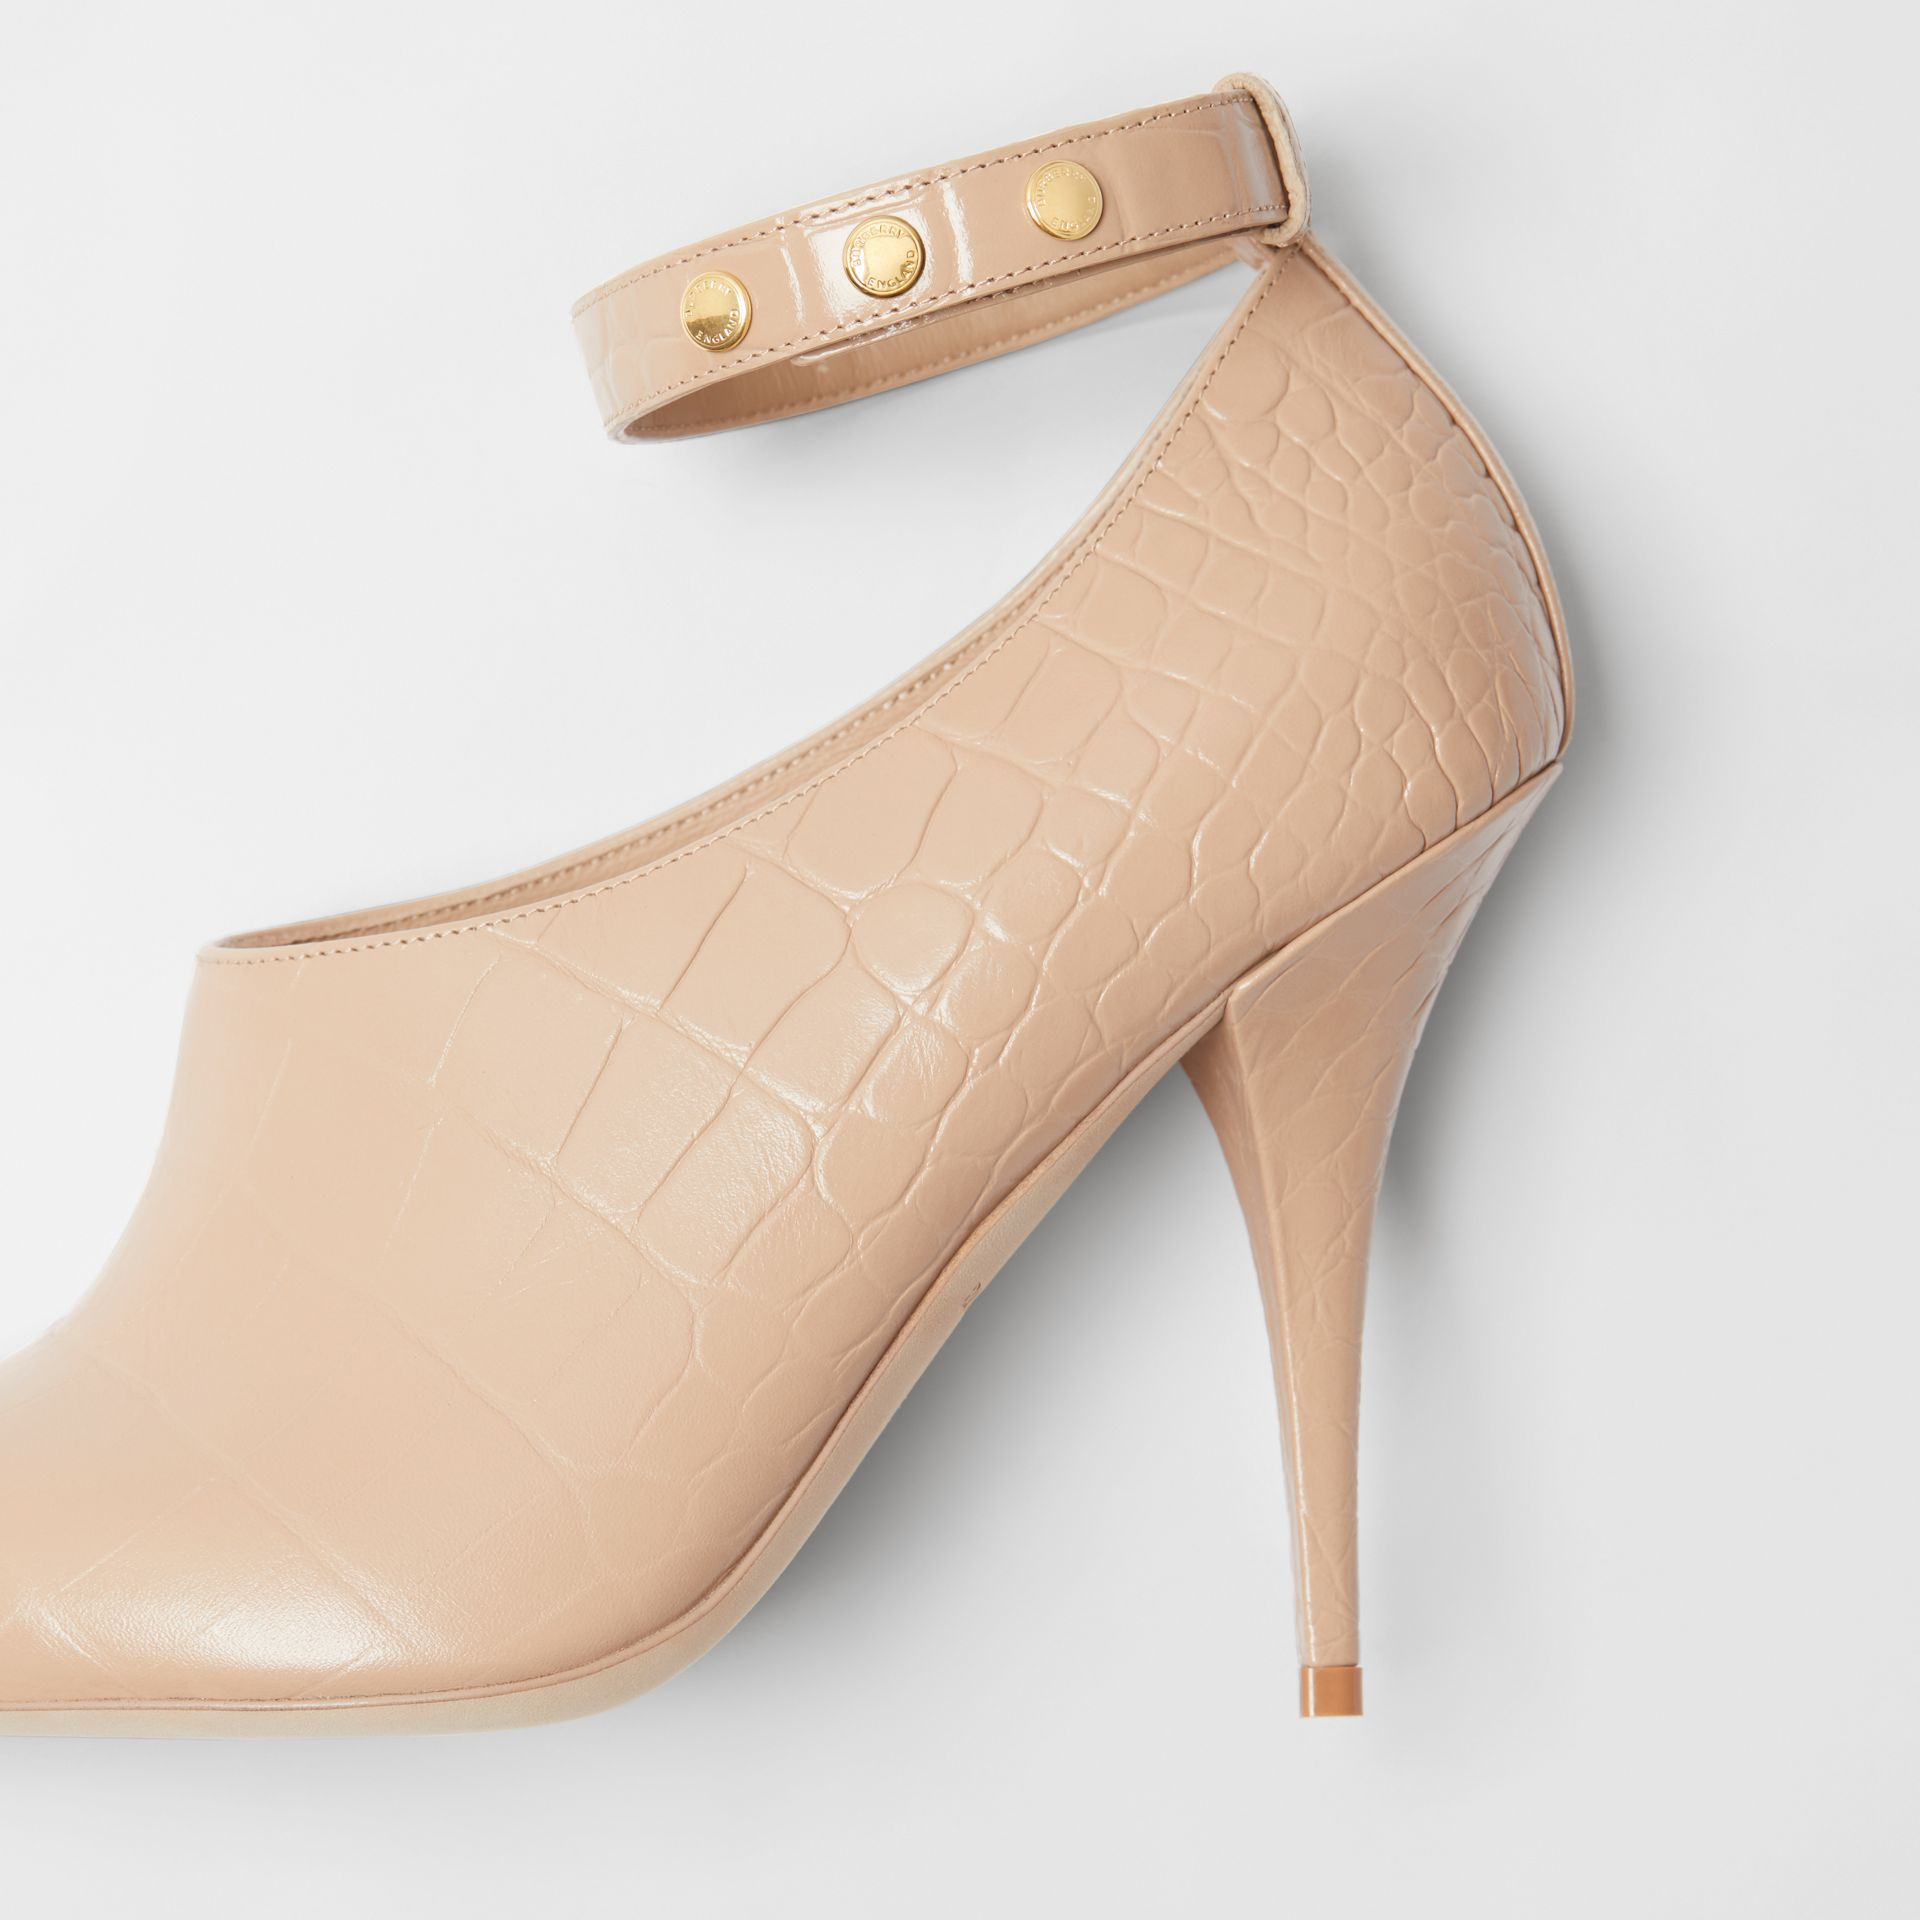 Embossed Leather Peep-toe Pumps in Driftwood - Women | Burberry - gallery image 1